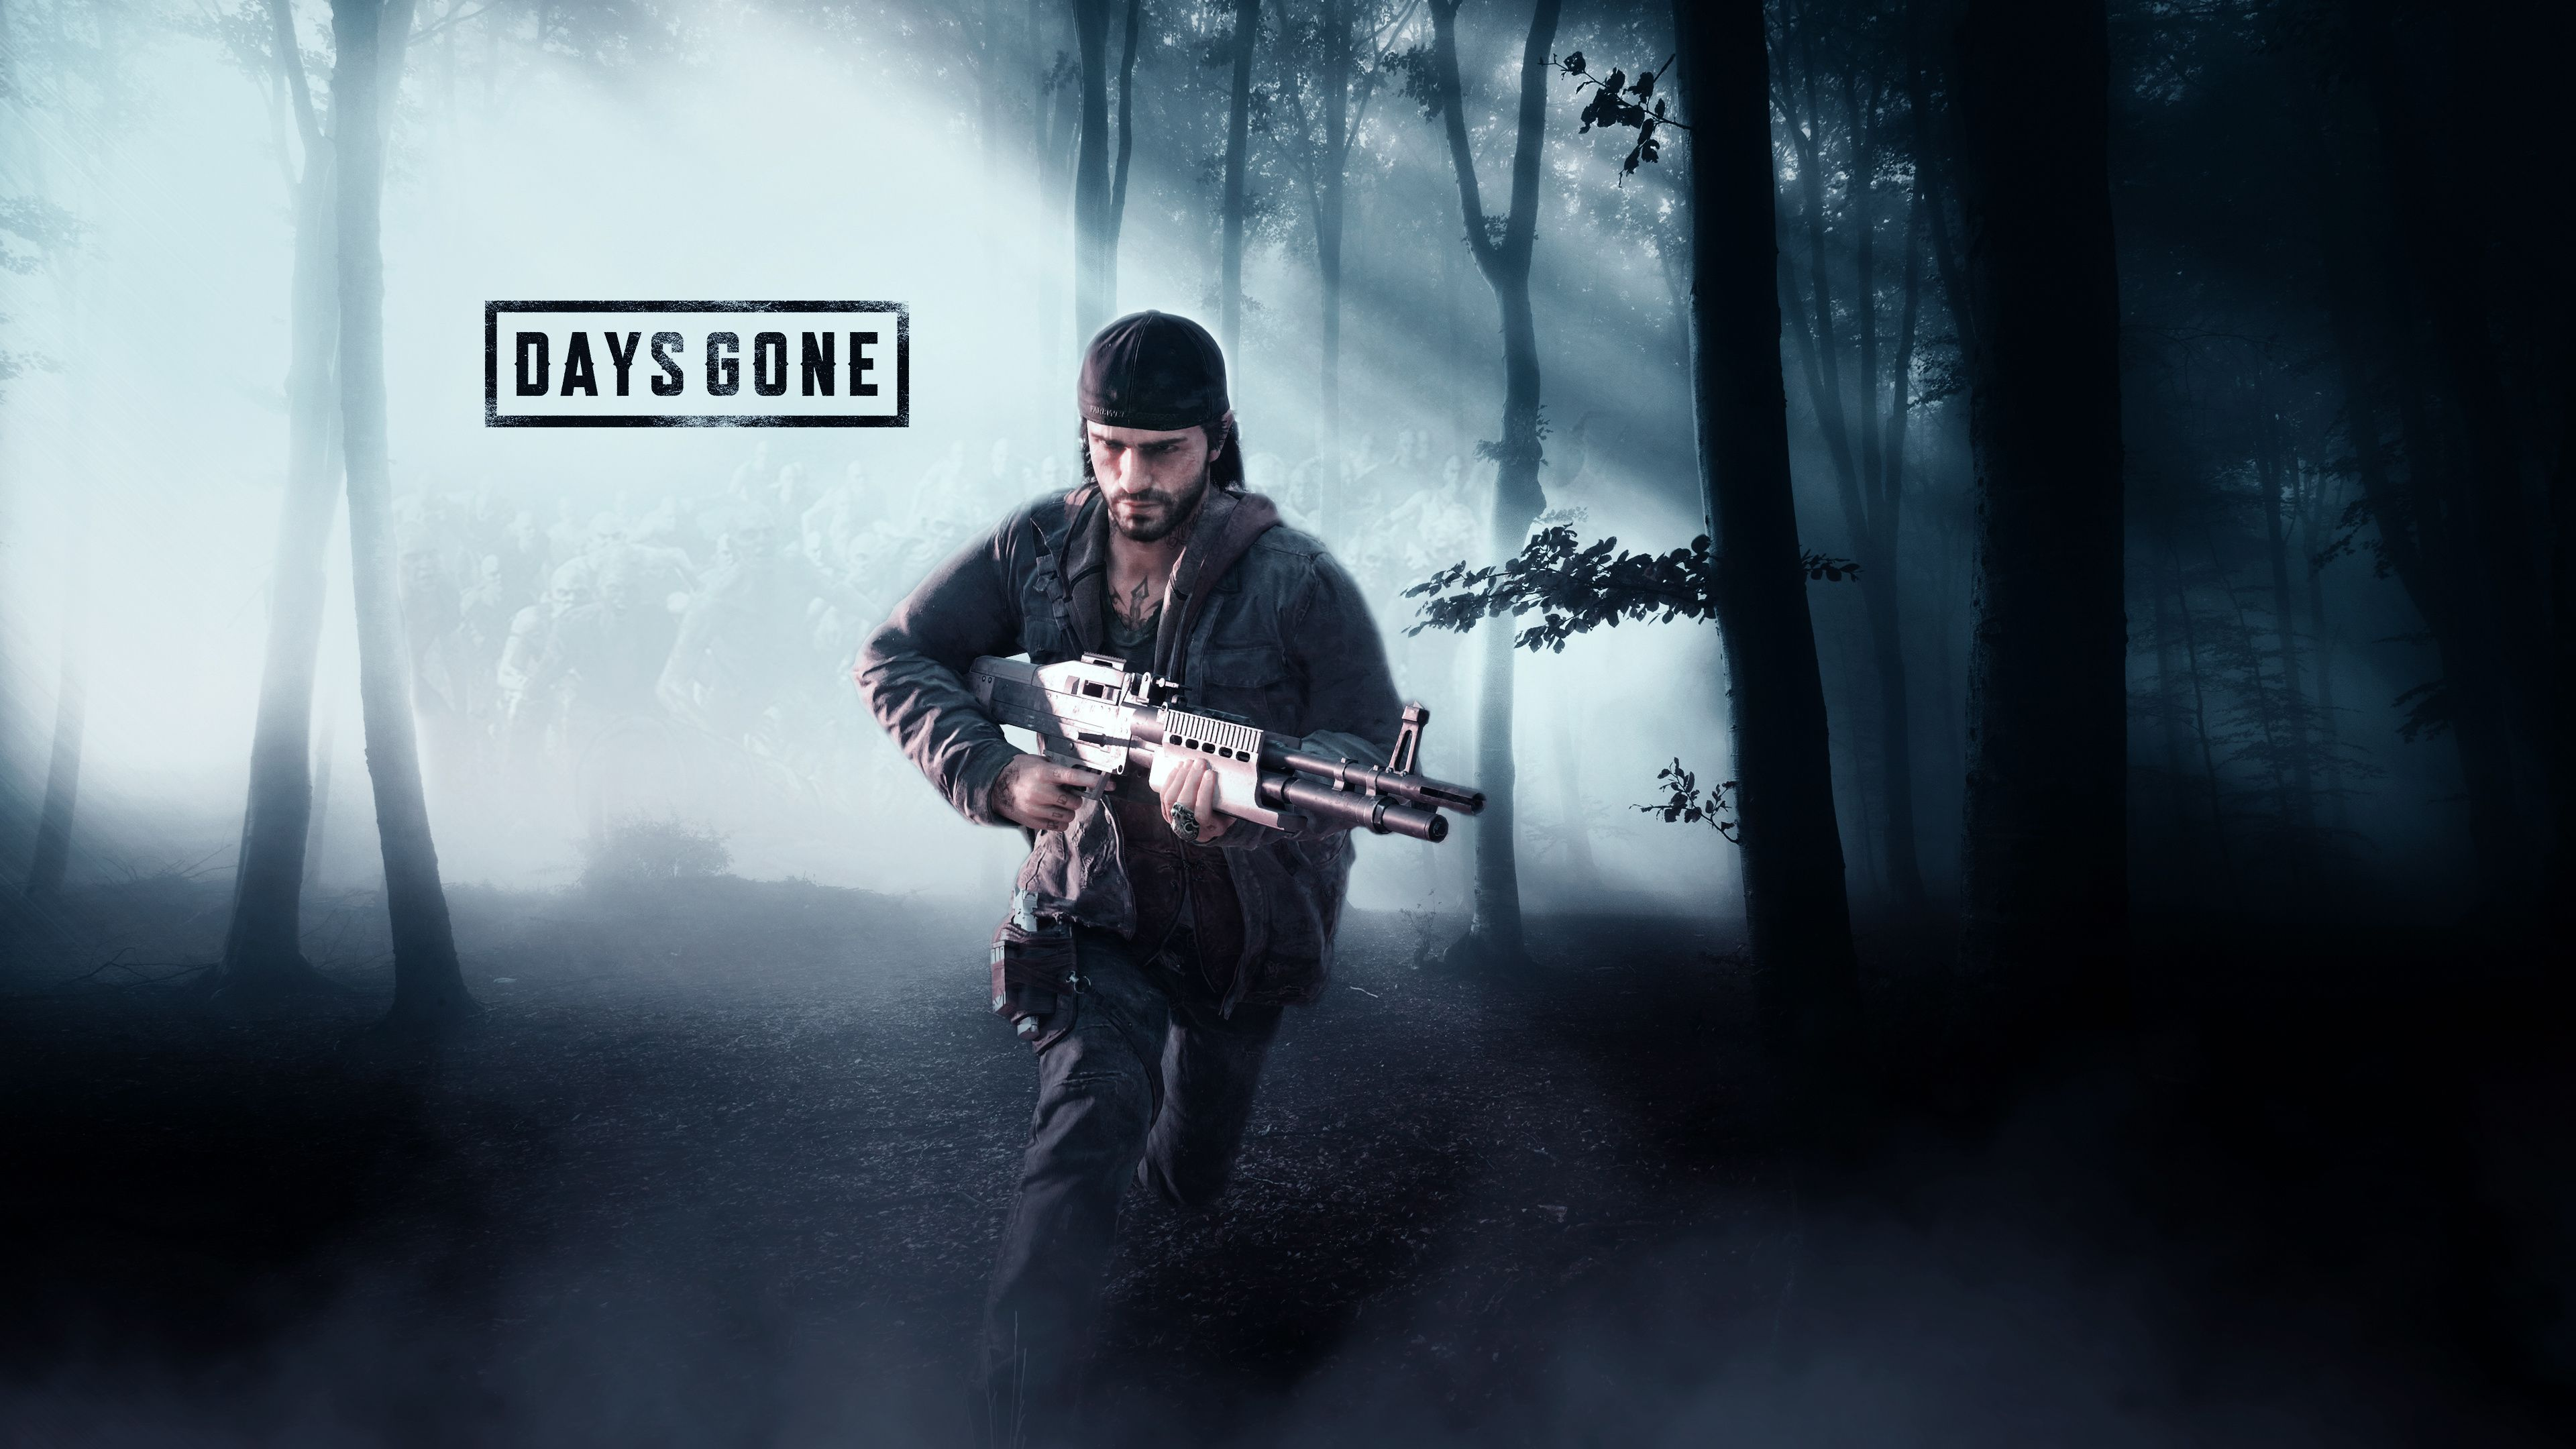 Days Gone Wallpapers - Top Free Days Gone Backgrounds ...